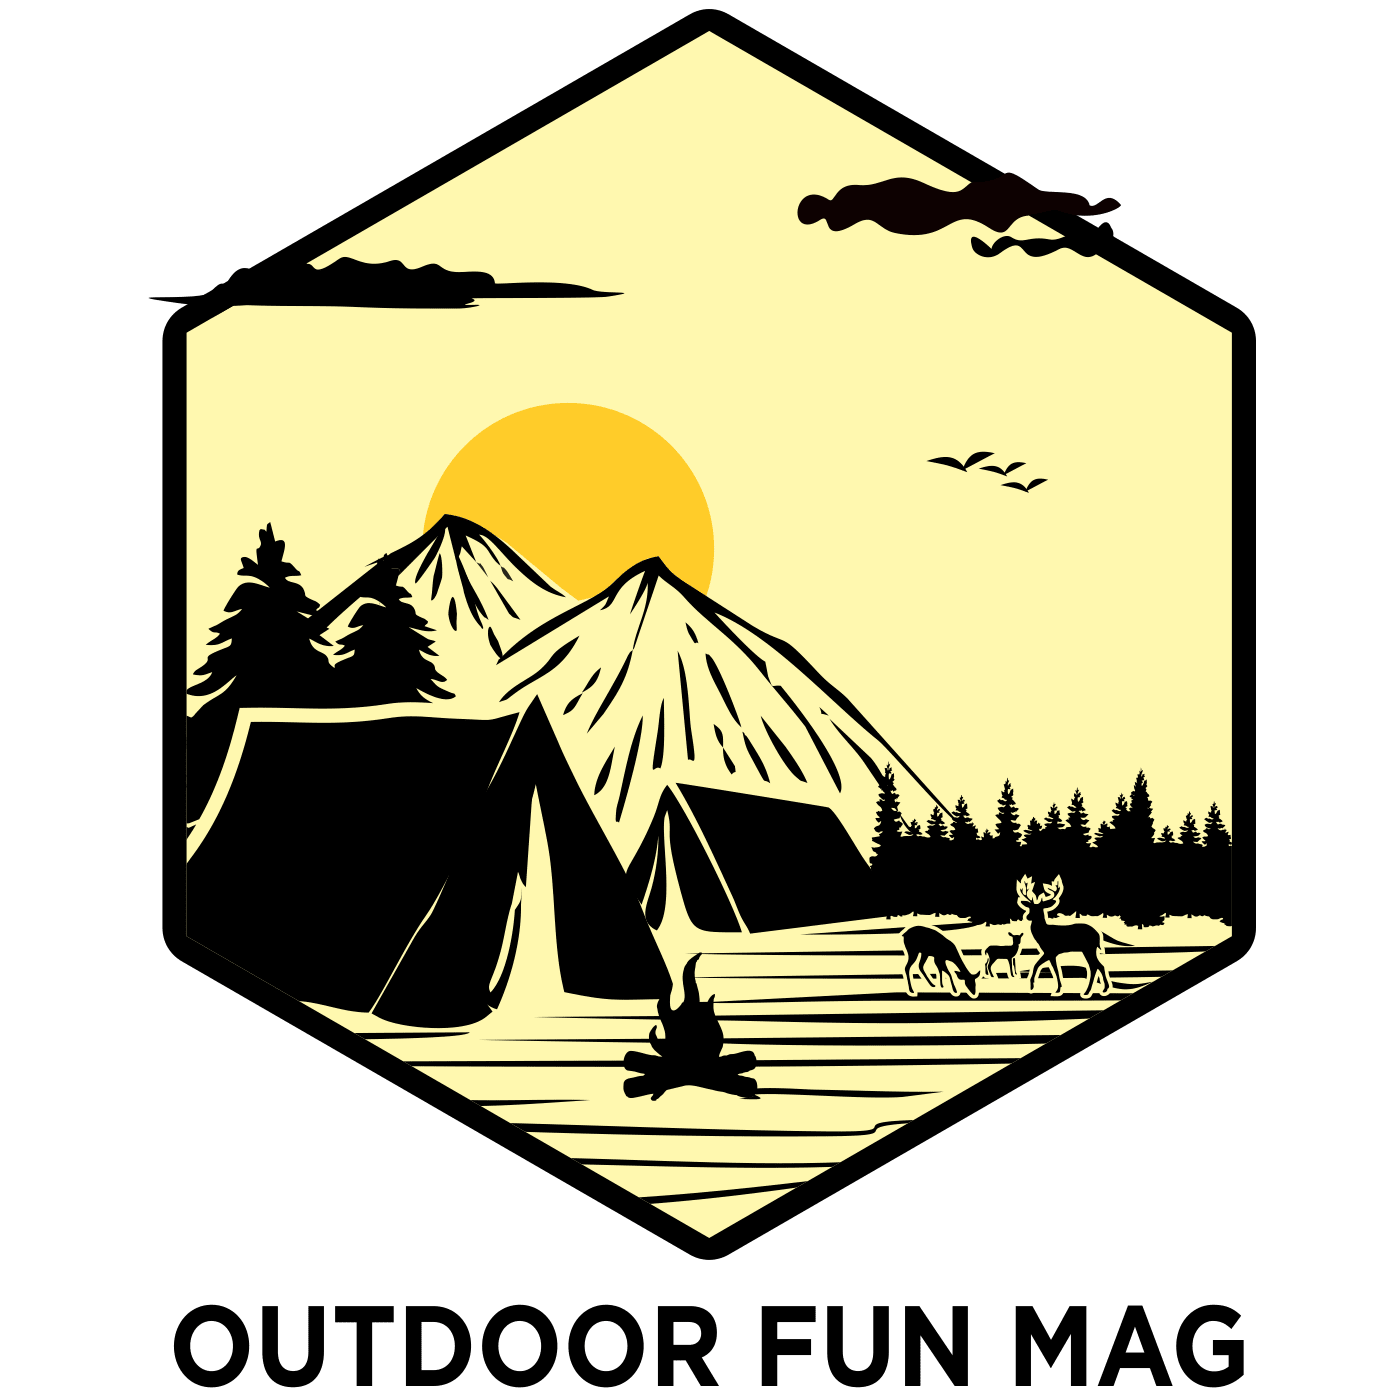 OutdoorFunMag